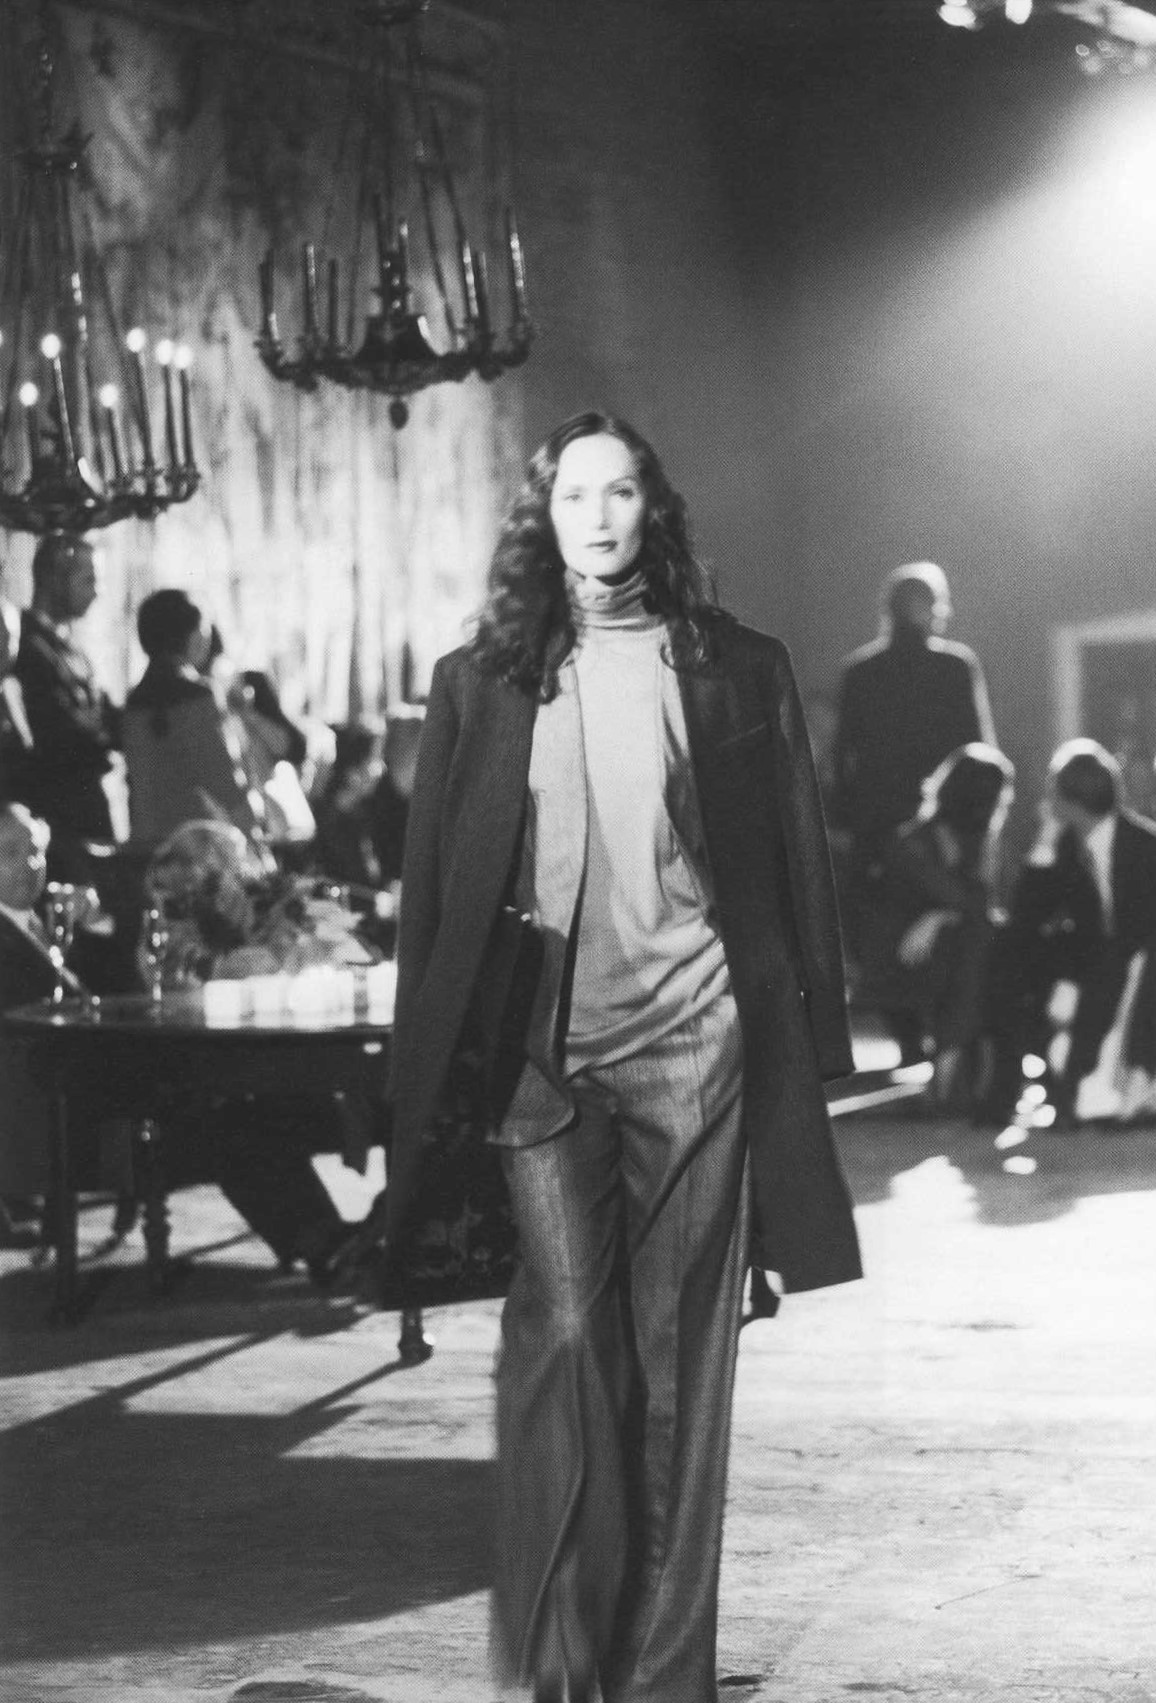 MARTIN MARGIELA FOR HERMES | AUTUMN/WINTER 2001/2002 SHOW AT AXEL VERVOORDT'S KANAAL, WIJNEGEM, BELGIUM | PHOTOGRAPHY KAROLINE AMAURY